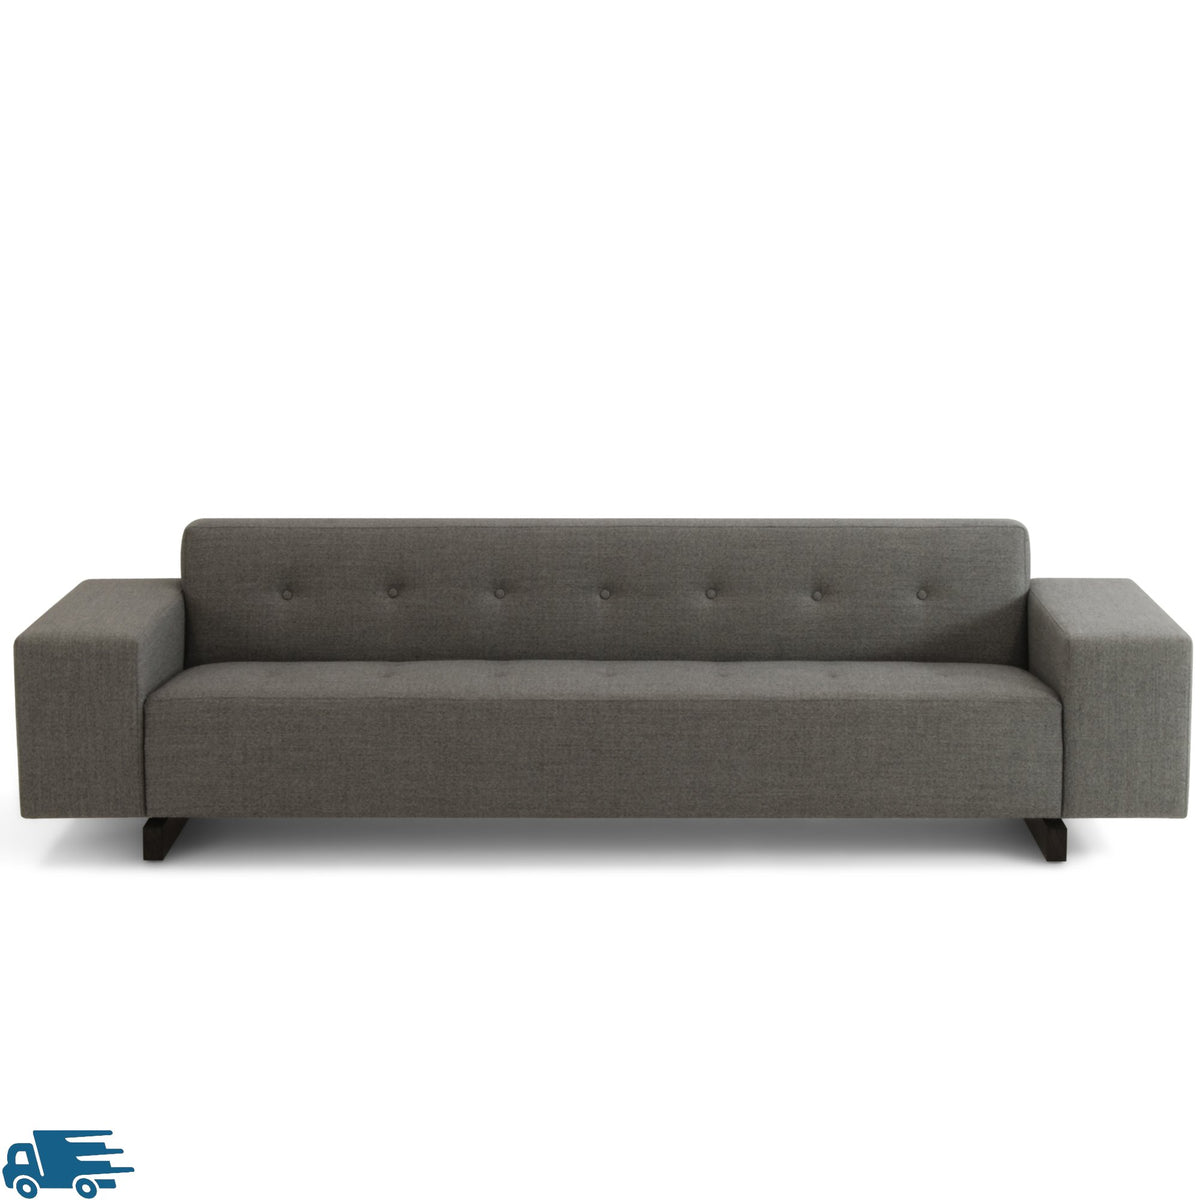 Hitch Mylius Office HM46 Abbey Three Seat Sofa